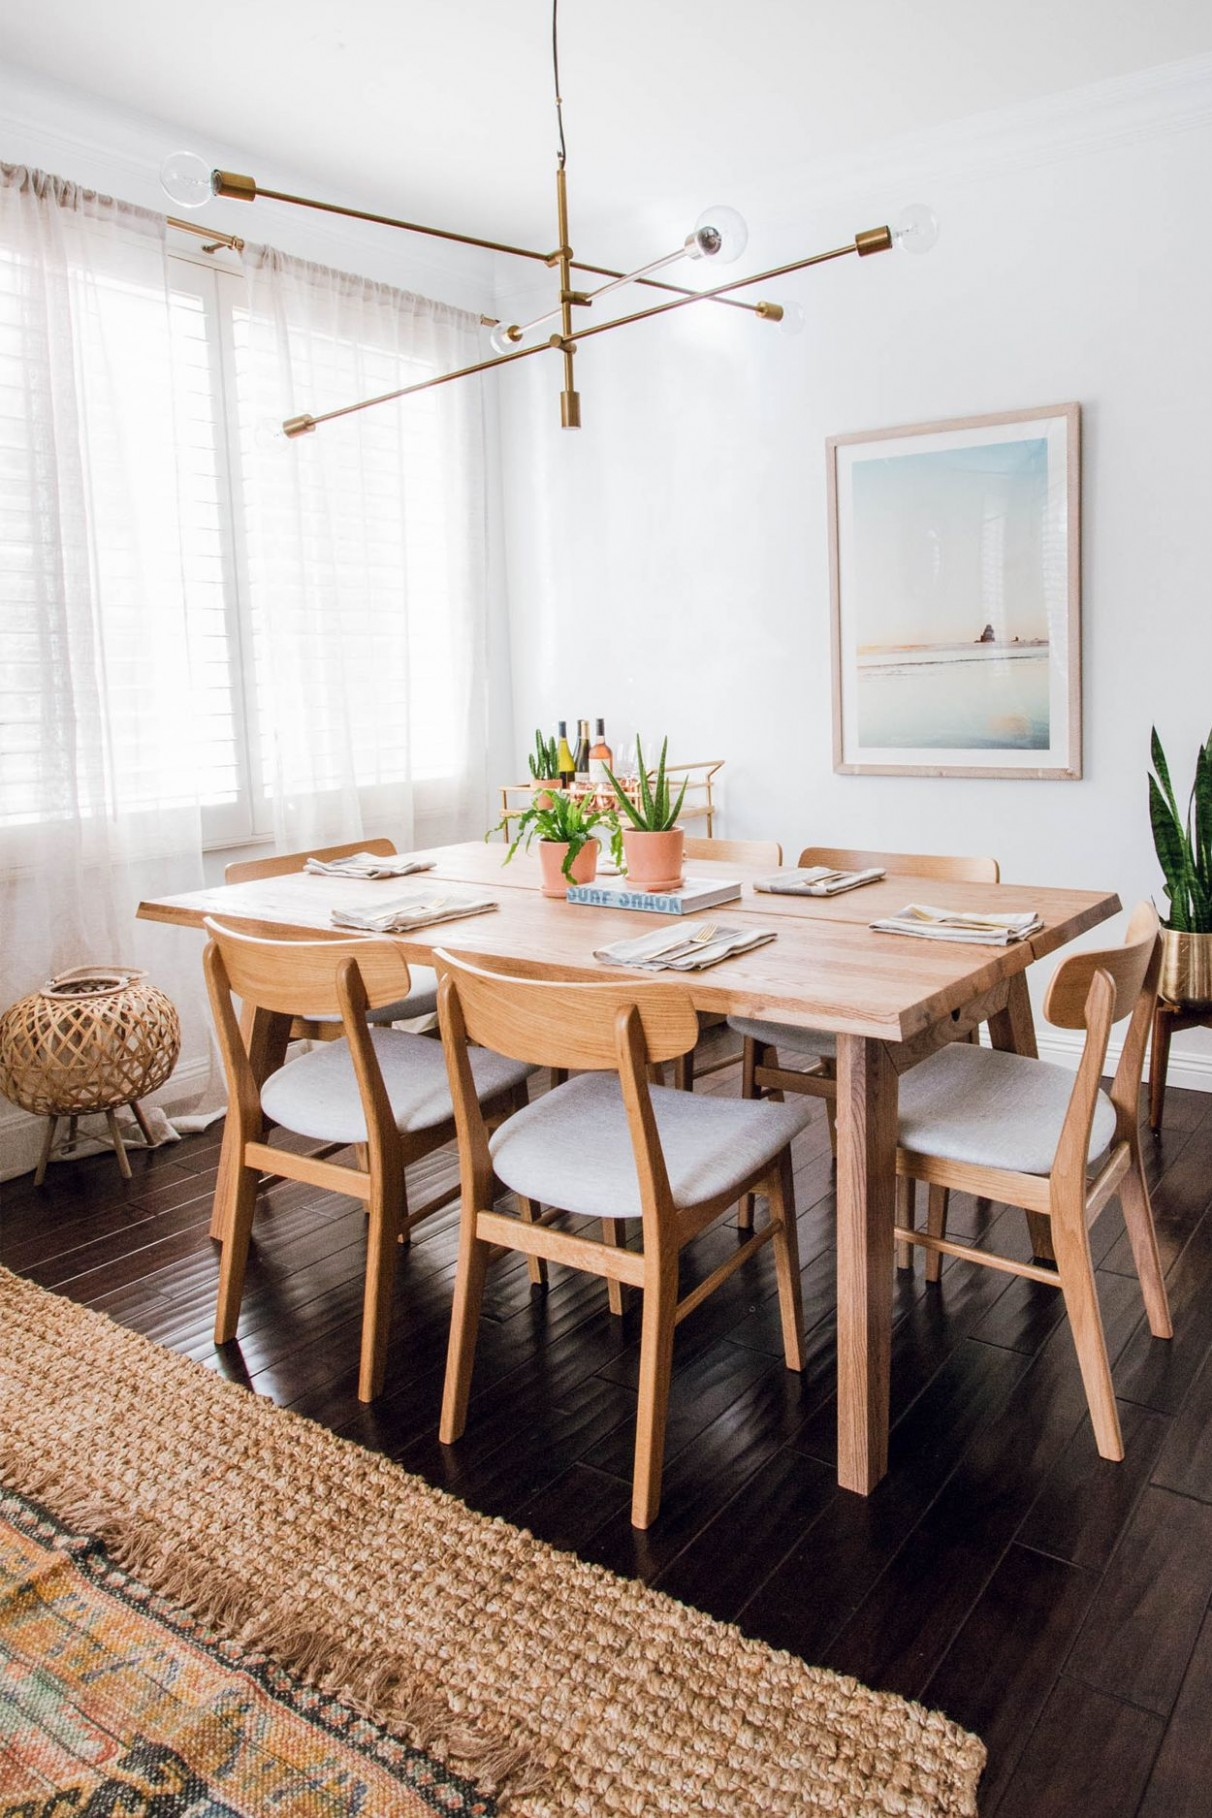 Madera Oak Dining Table For 10  Dining room small, Minimalist  - Dining Room Ideas Oak Table